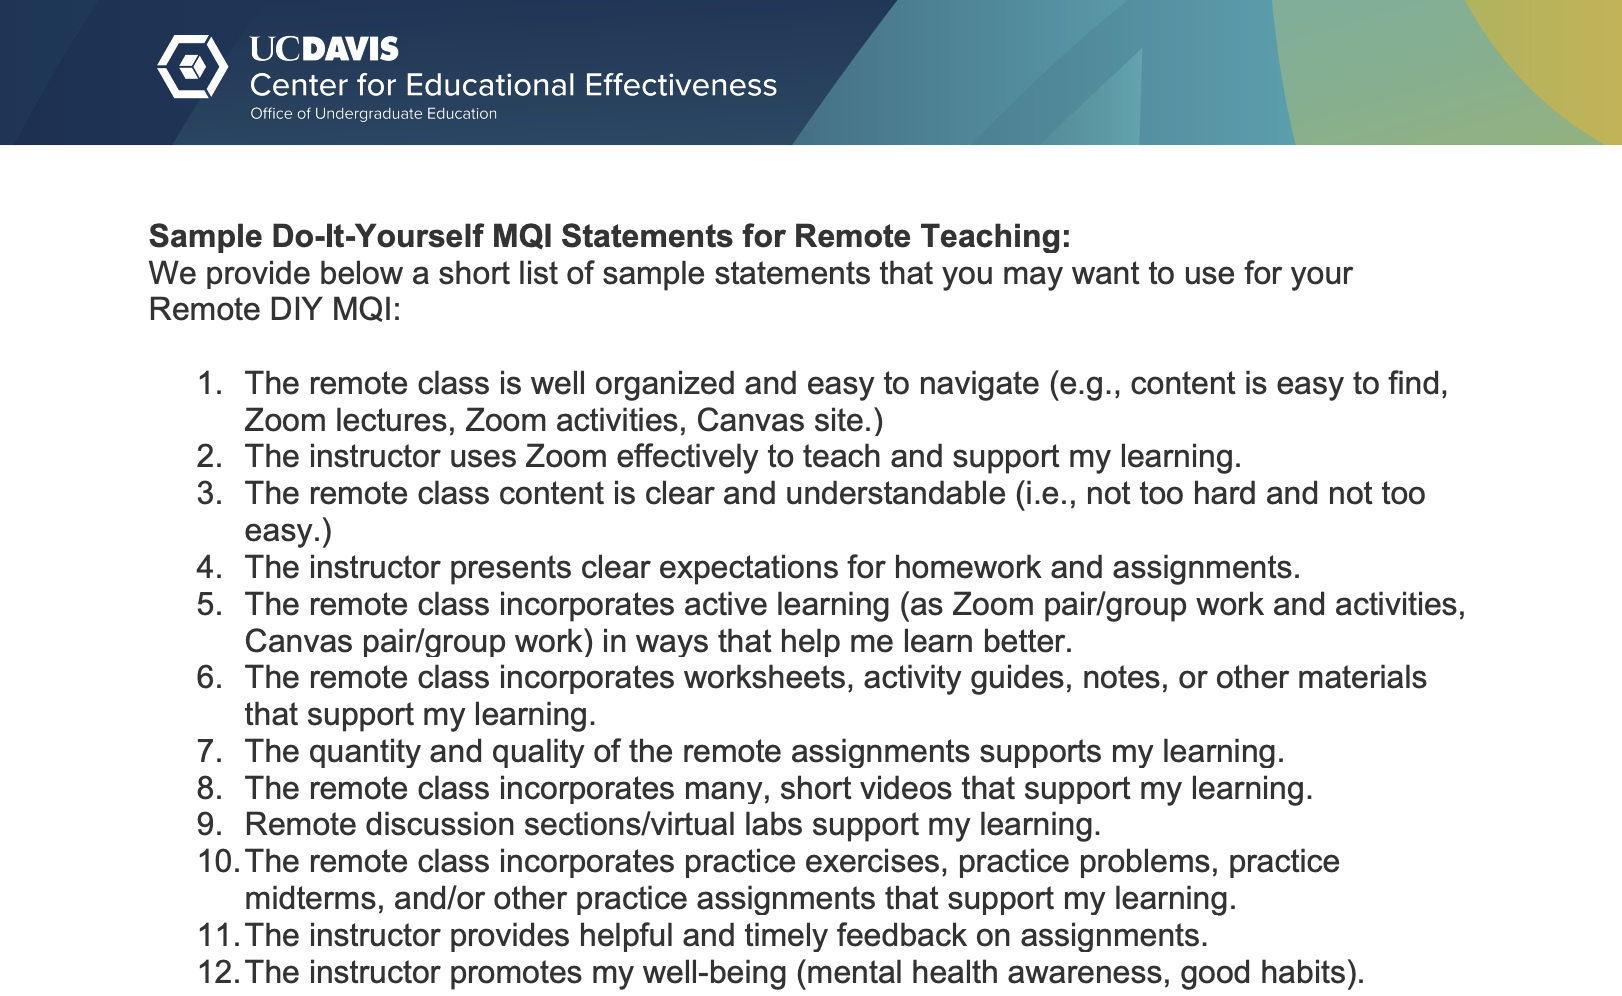 Sample Do-It-Yourself MQI Statements